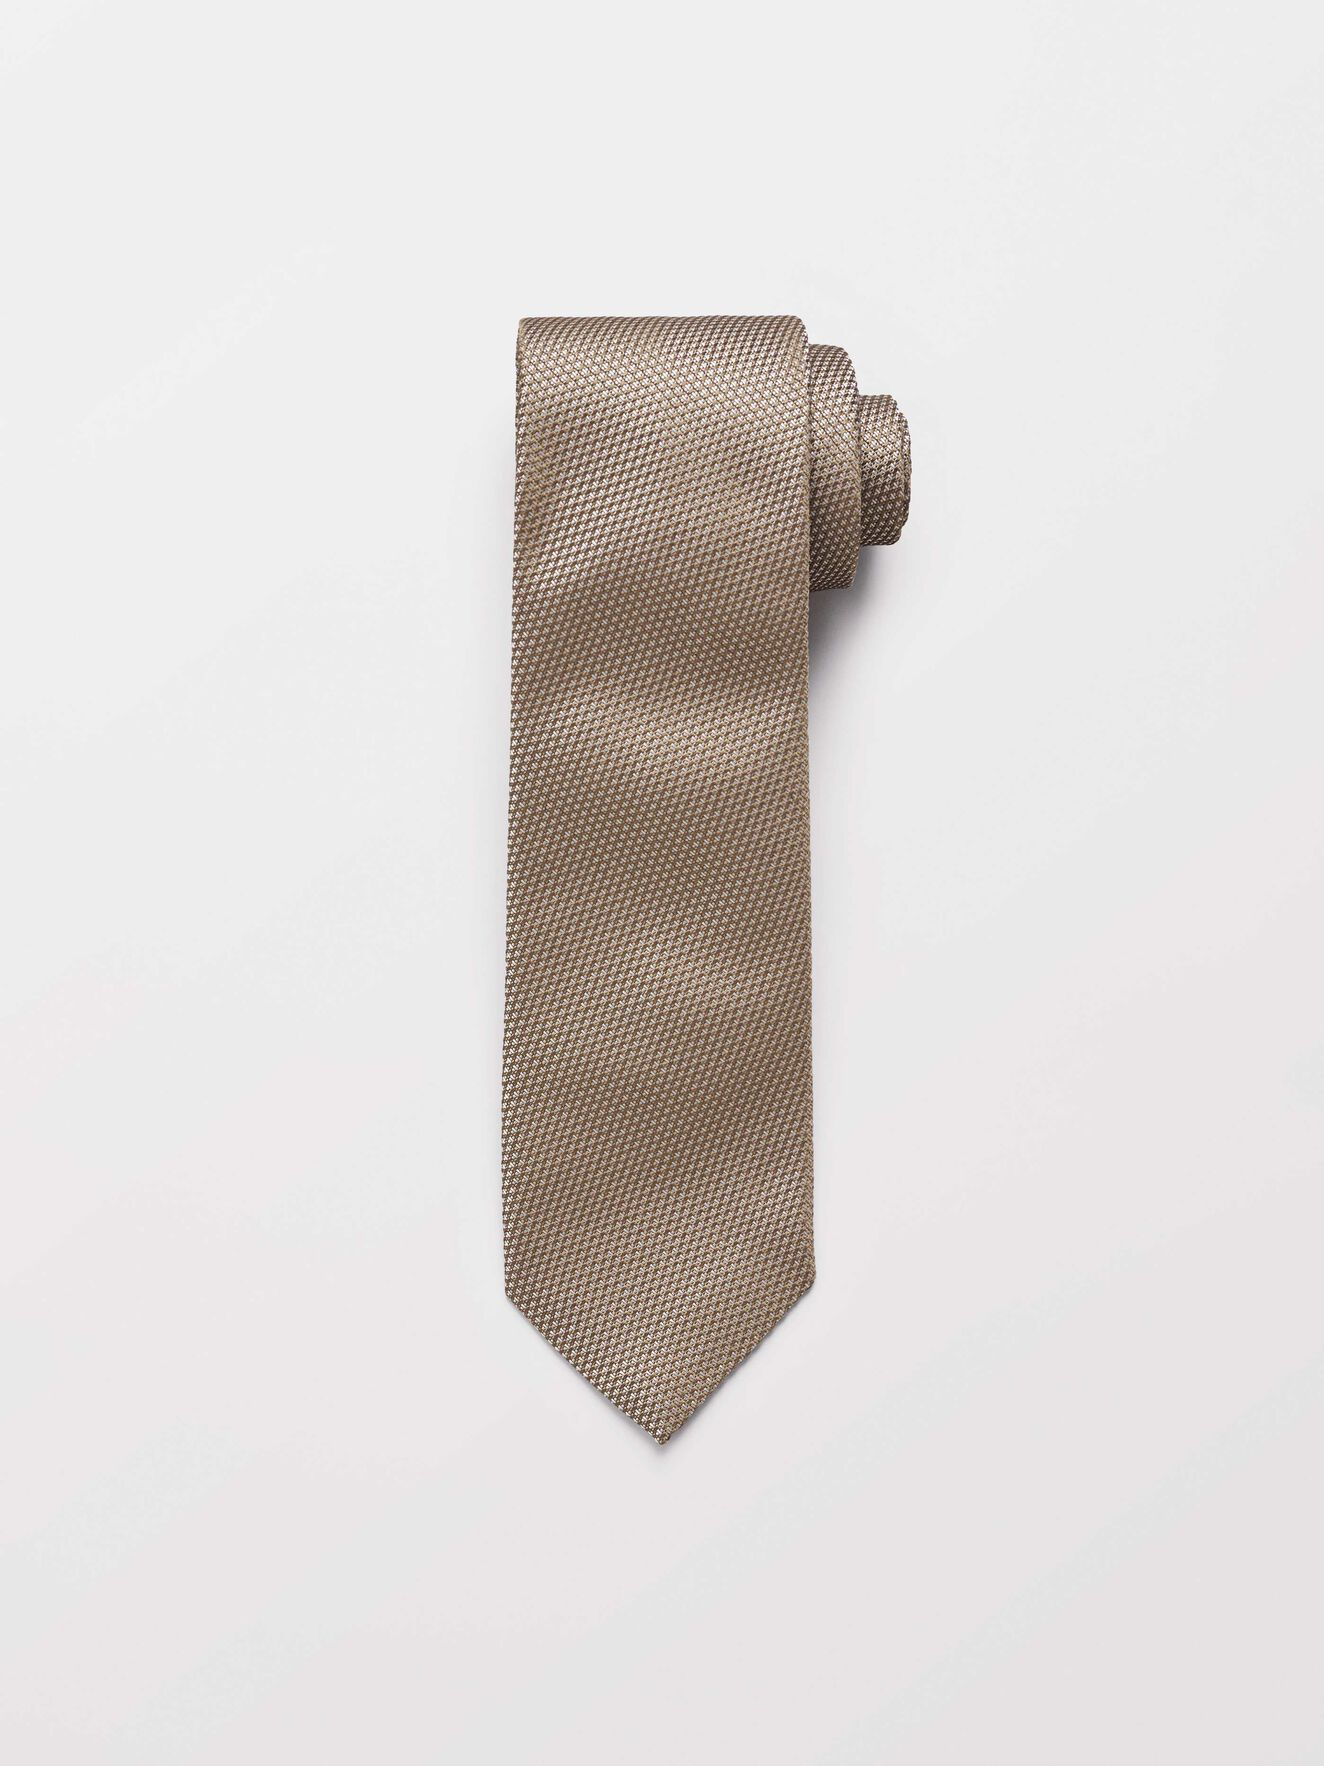 Terete Tie in Peru from Tiger of Sweden